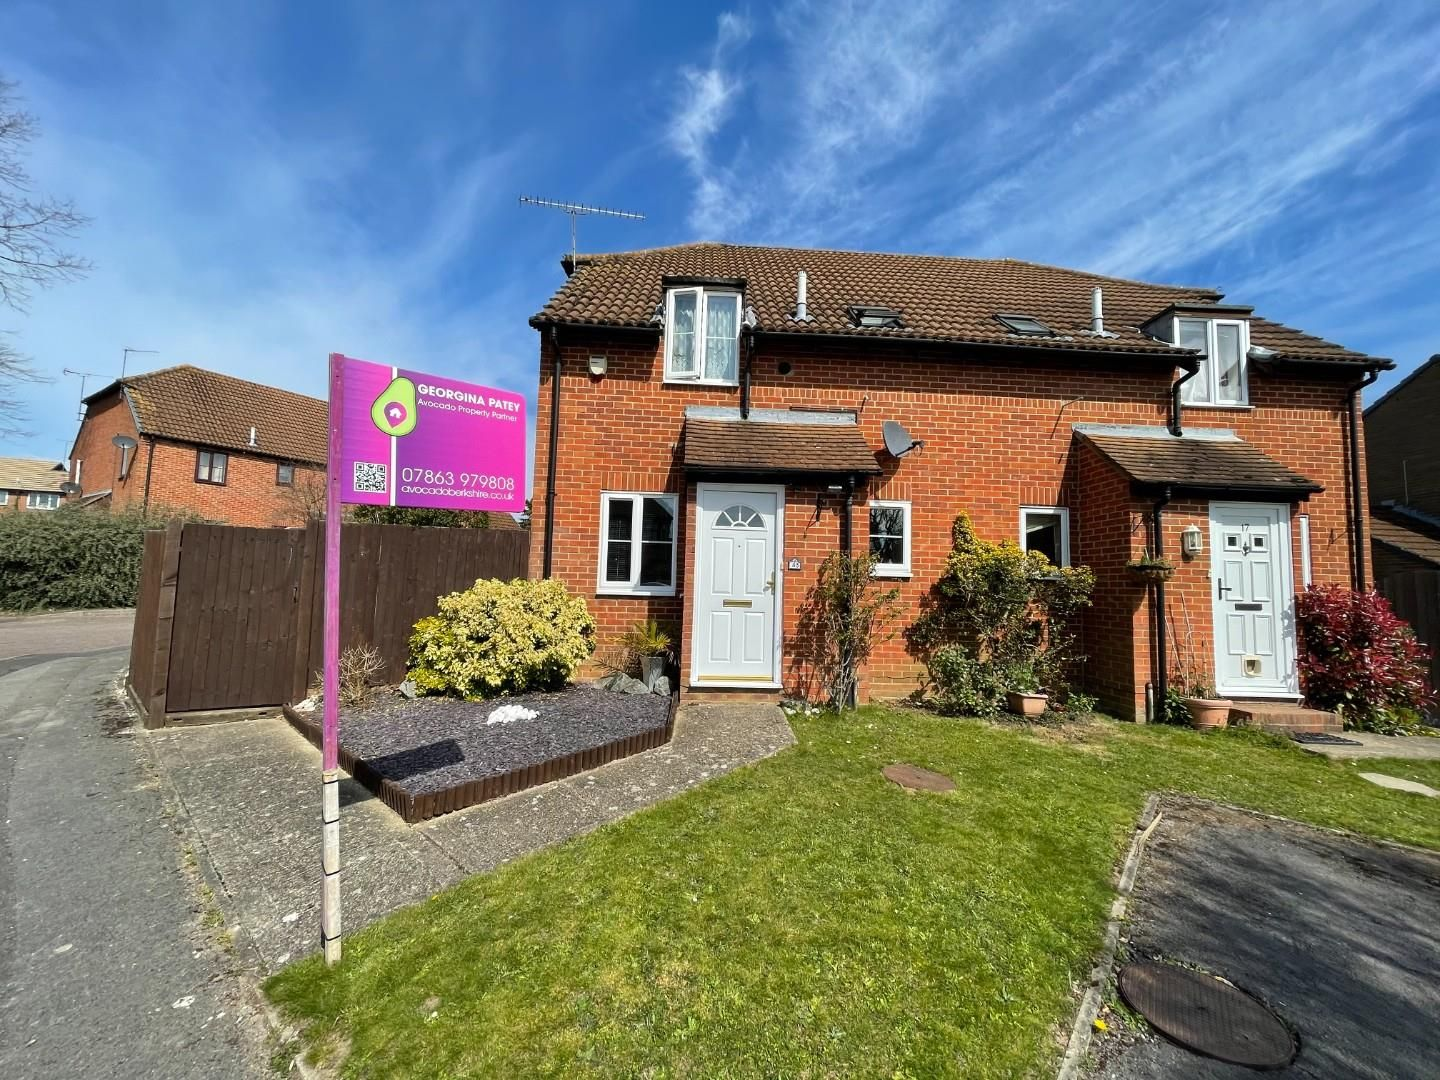 1 bed house for sale in Lower Earley, RG6